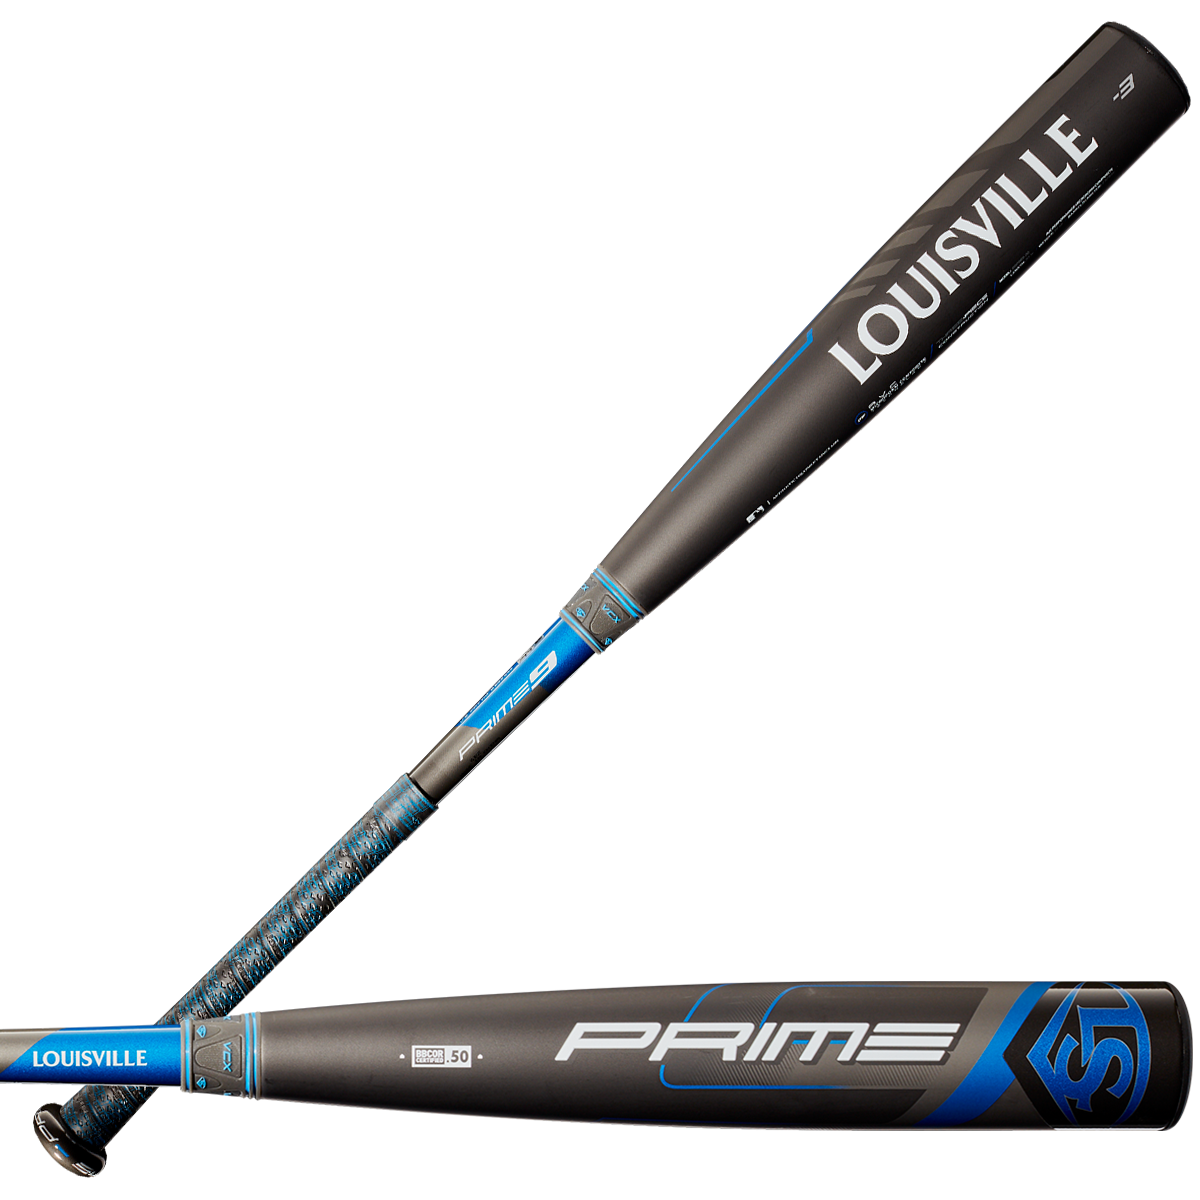 2020 Louisville Slugger Prime BBCOR (-3) Baseball Bat